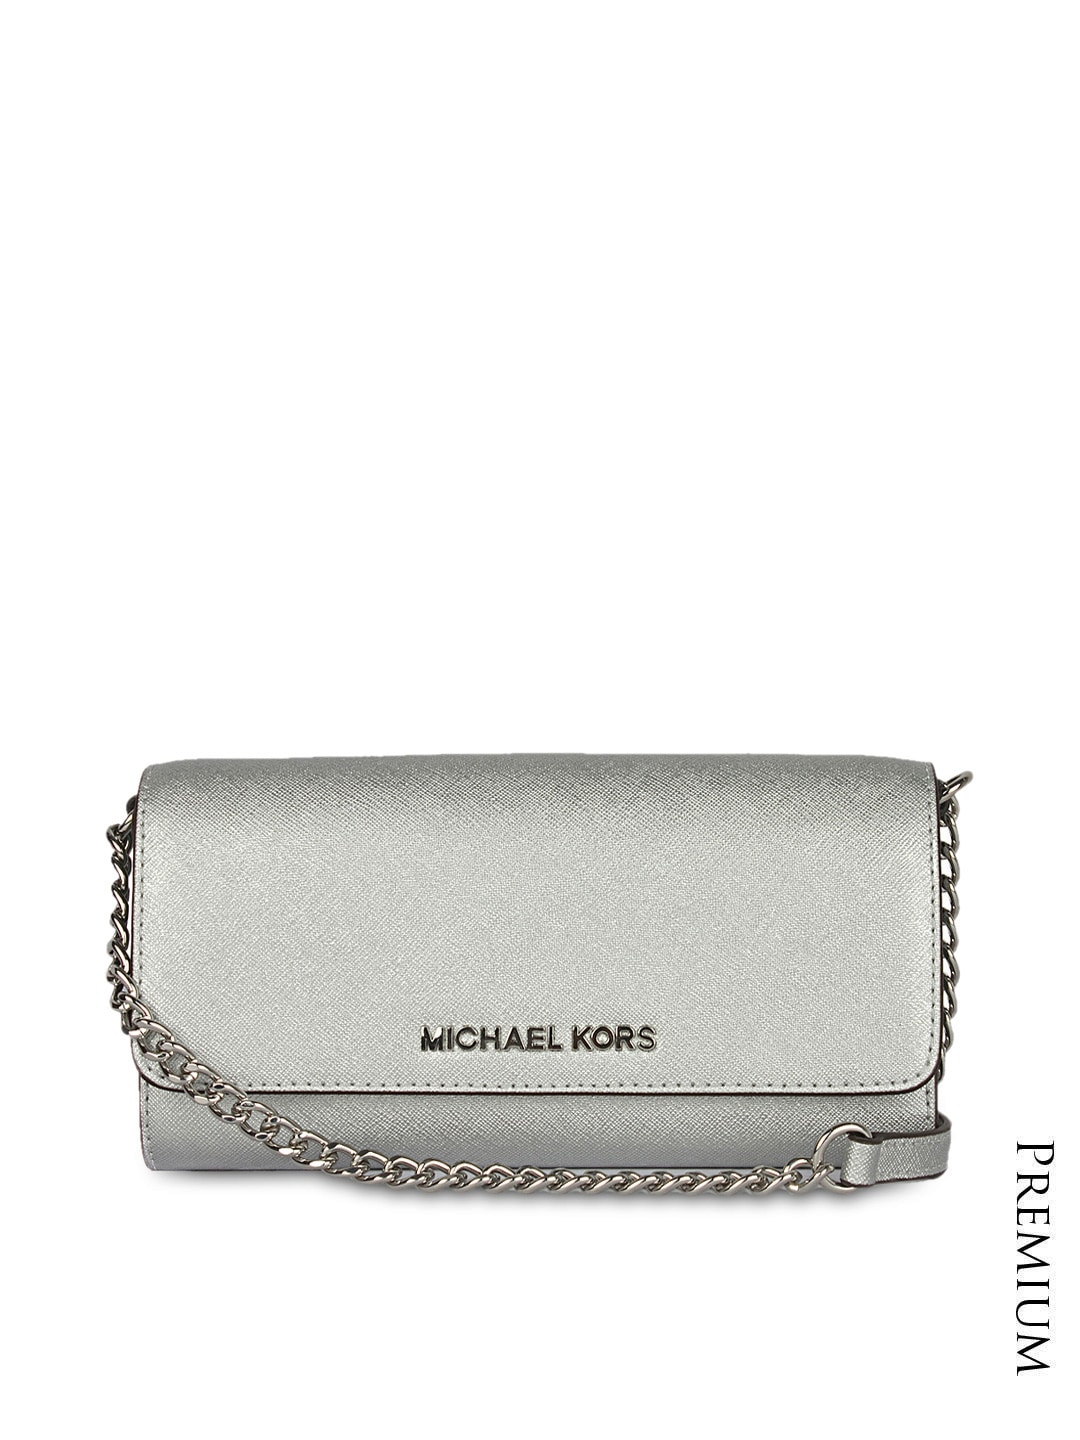 2010411a3654ee Michael kors 7030-silver Women Silver Toned Textured Leather Sling Bag-  Price in India